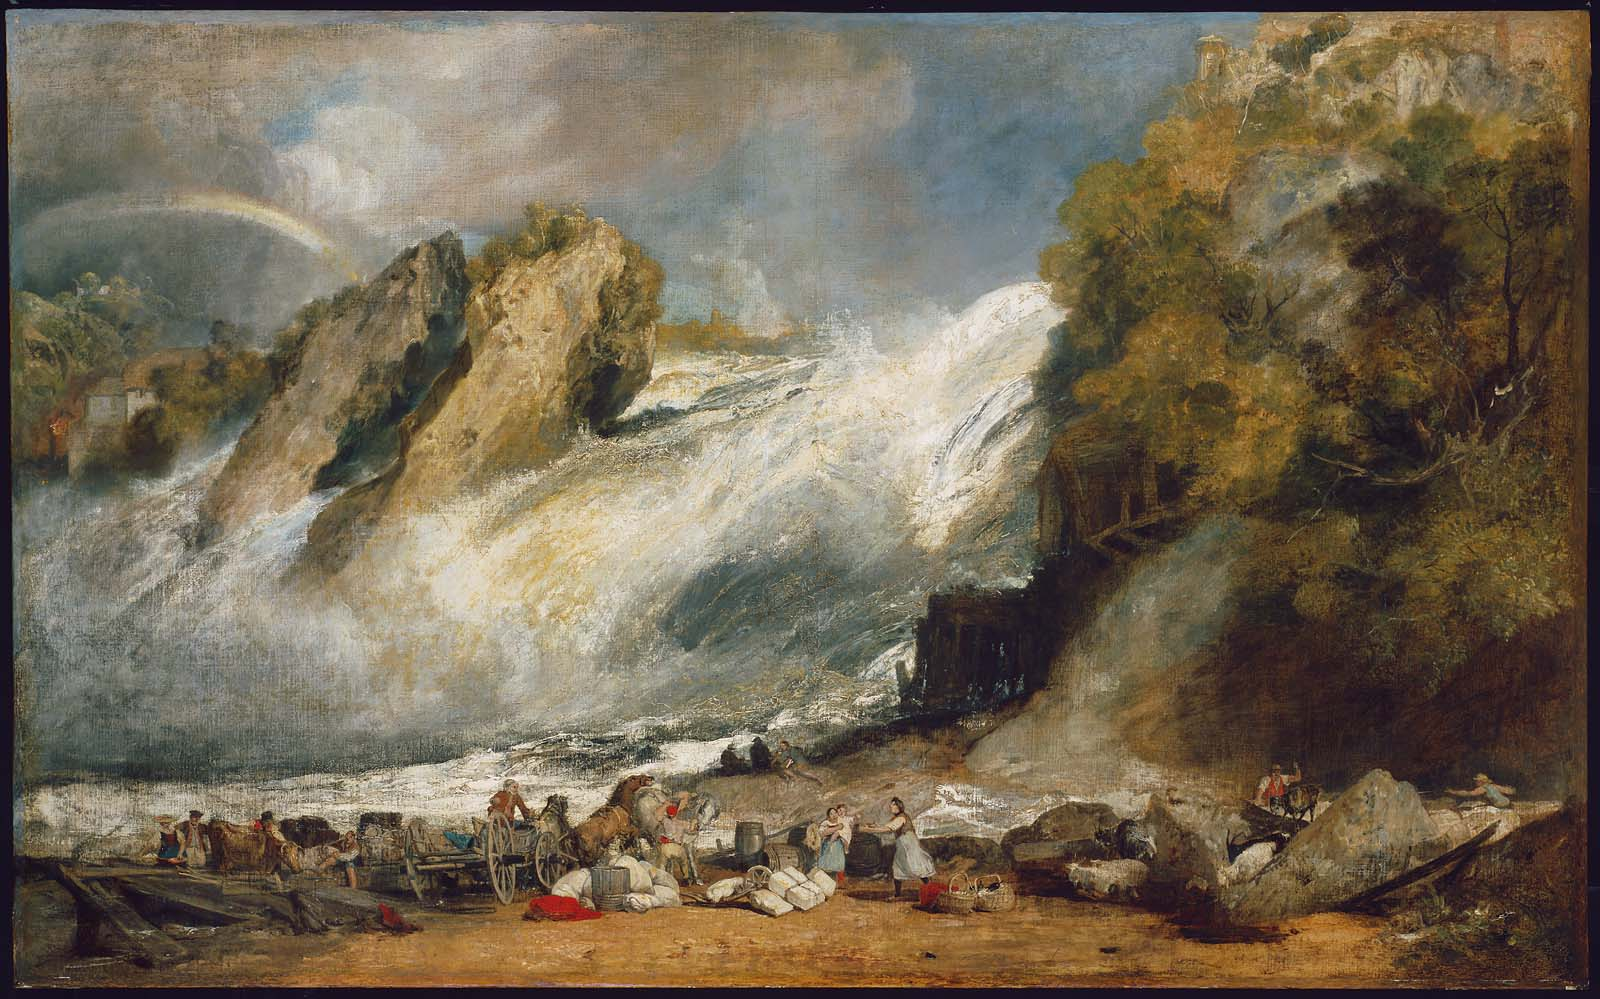 Fall of the Rhine at Schaffhausen 1805-1806